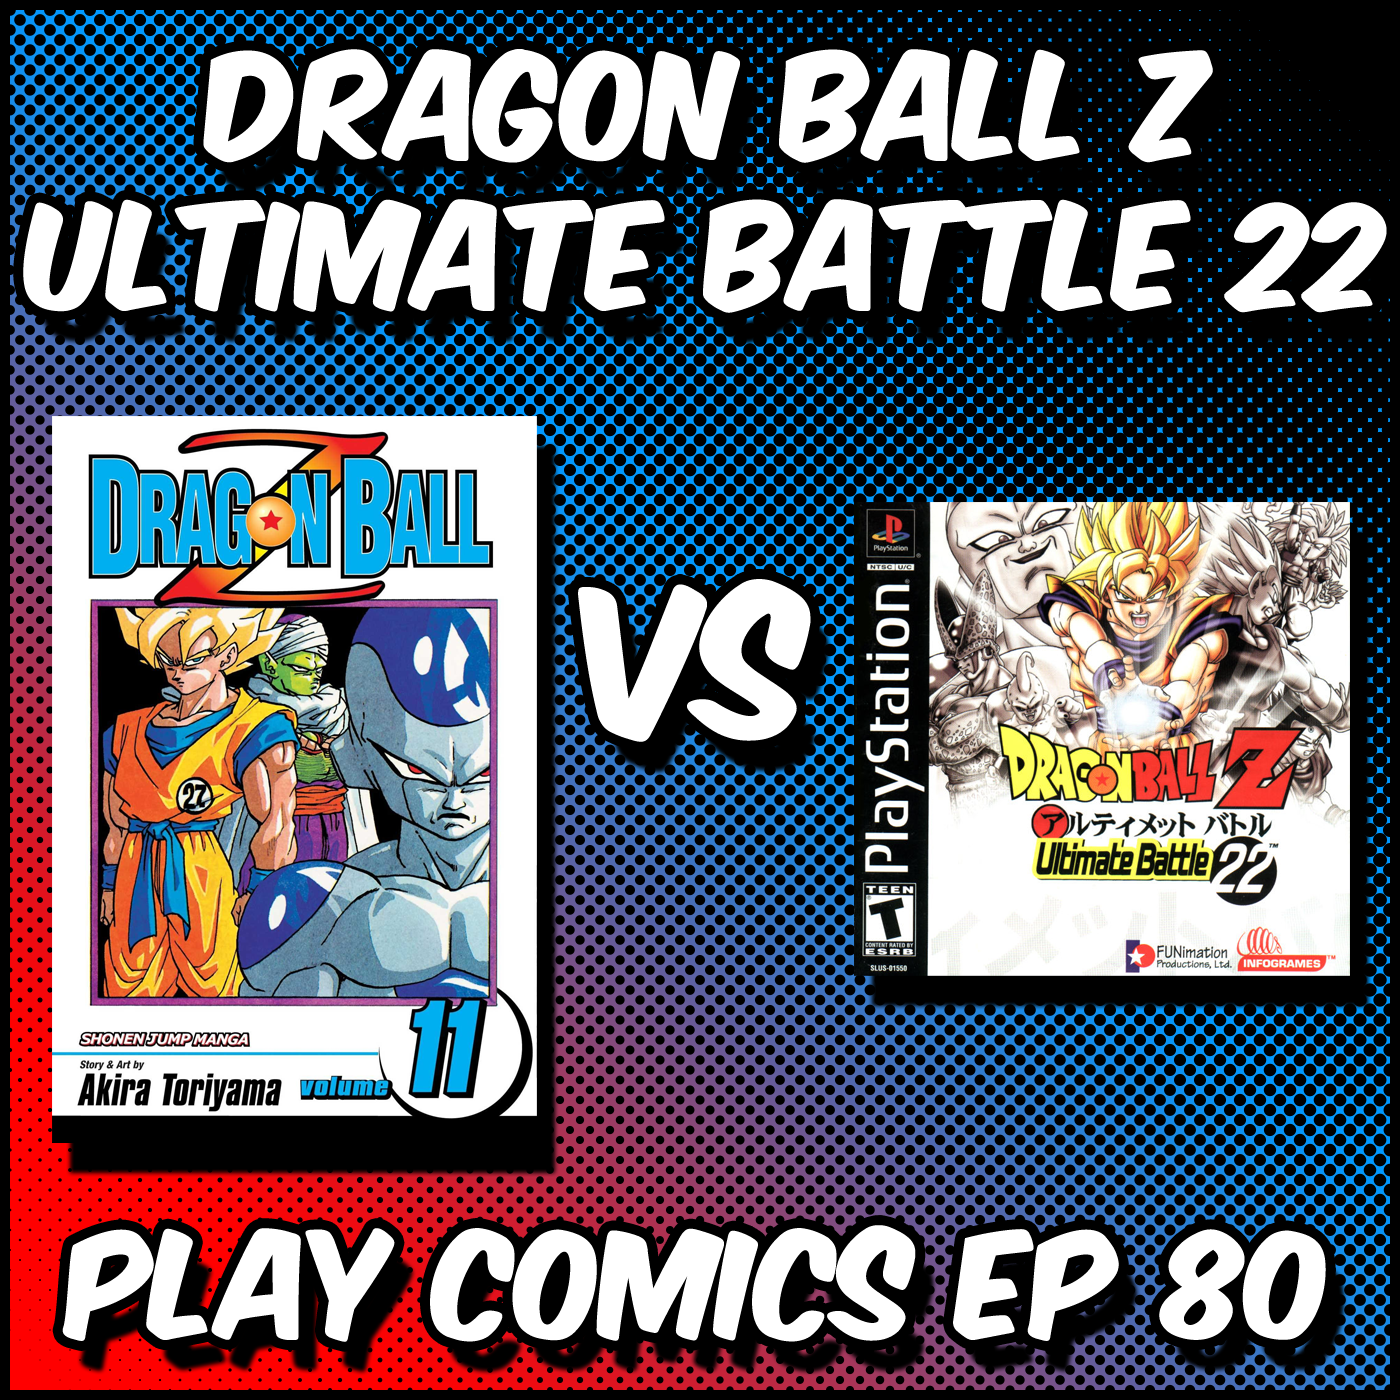 Dragon Ball Z Ultimate Battle 22 with Luke Herr (Exiled/Mutliversal Q/RPG Pals Club)